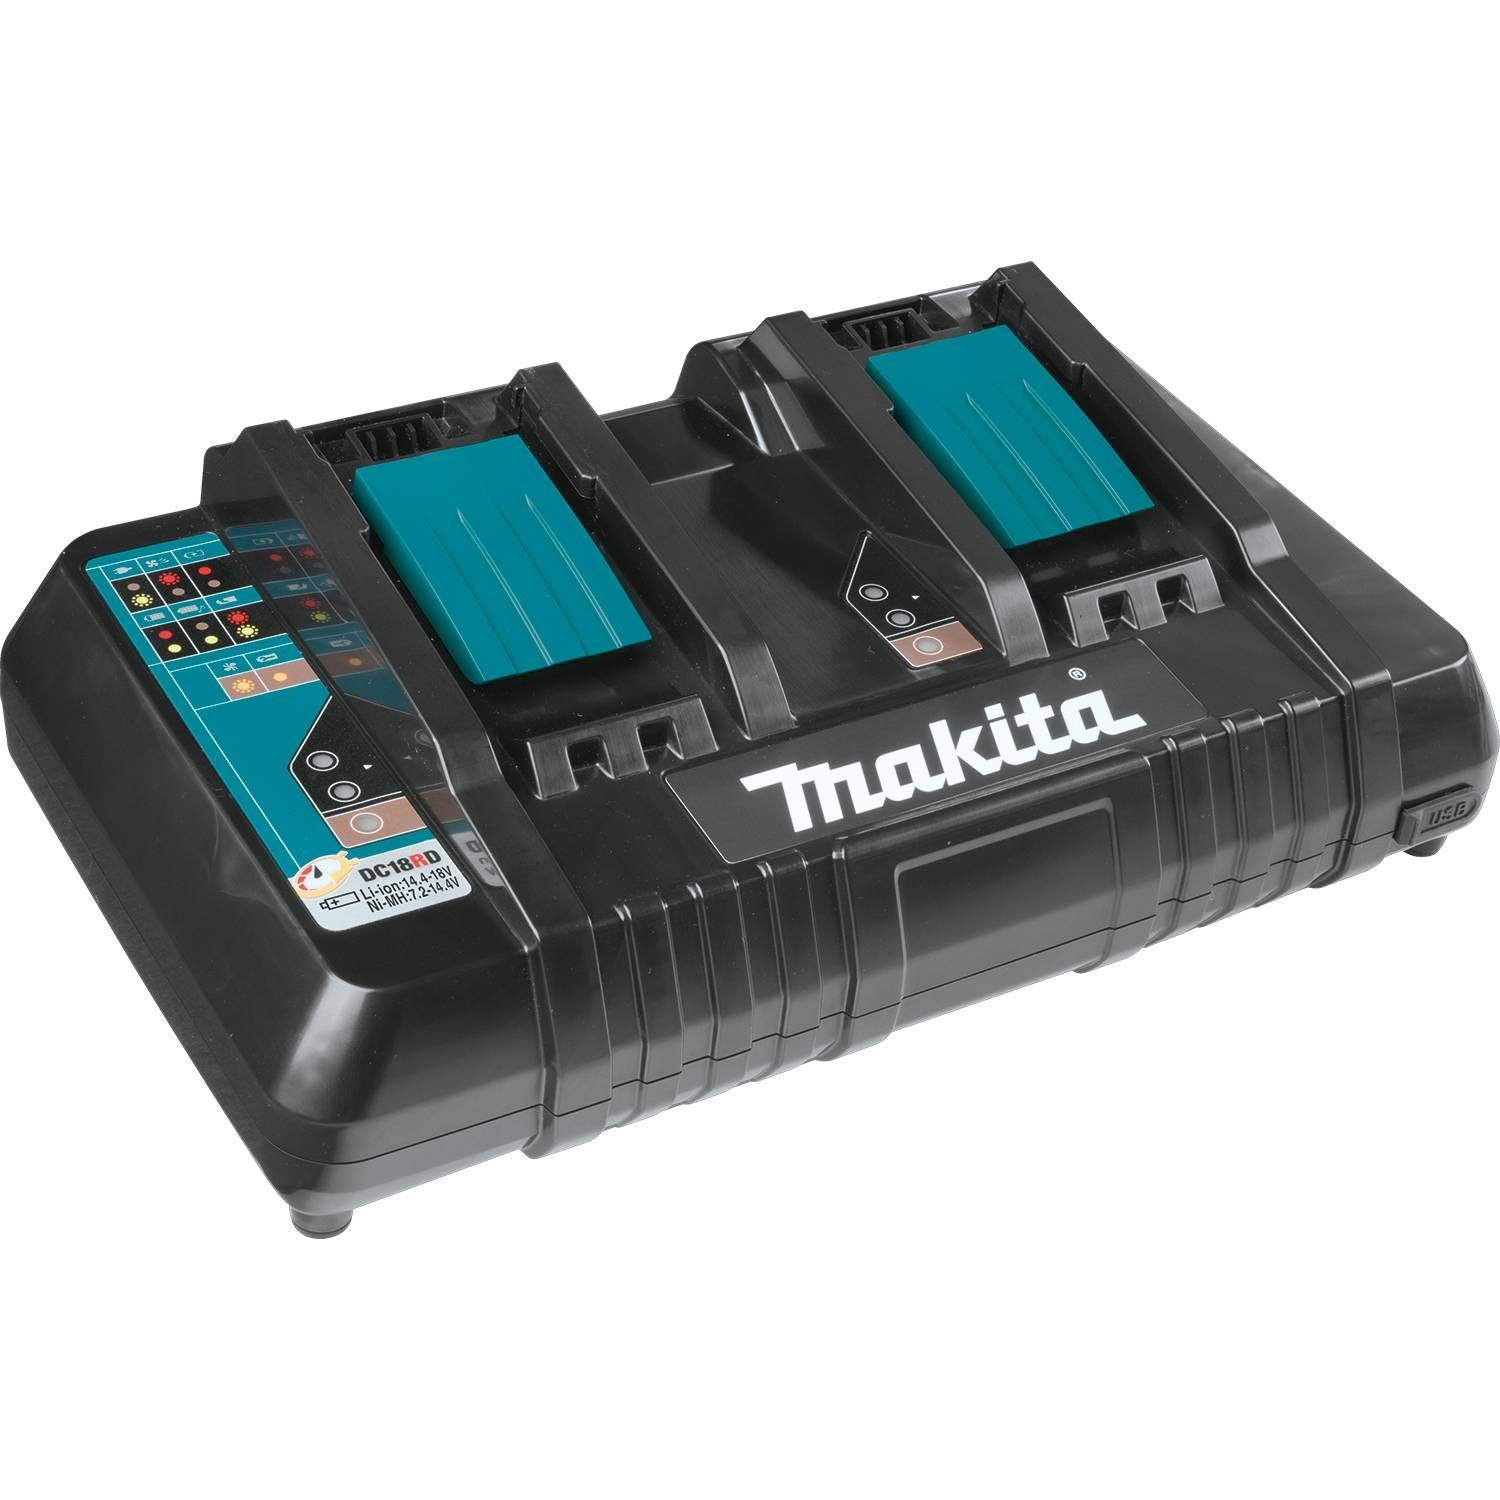 Makita XCU02PT1 featured image 4